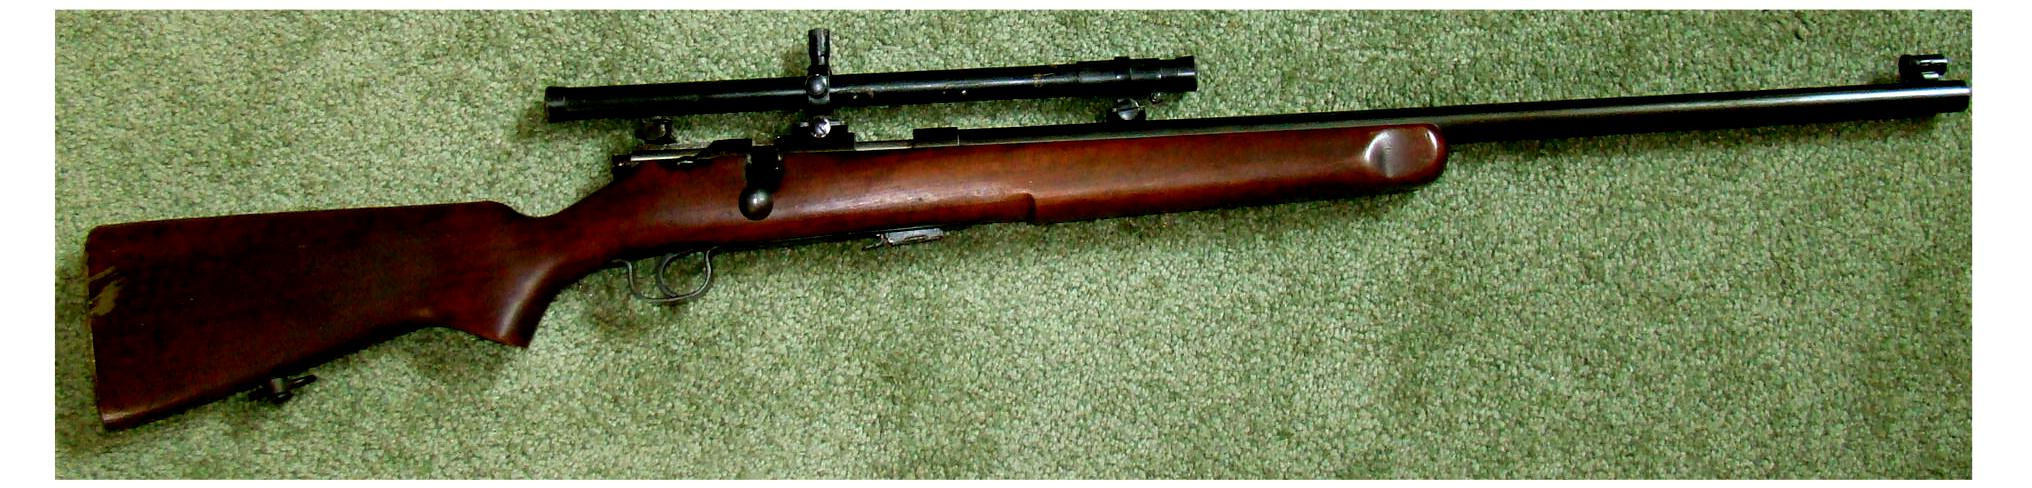 Click image for larger version.  Name:gun pic's (14).JPG Views:20 Size:201.5 KB ID:369427